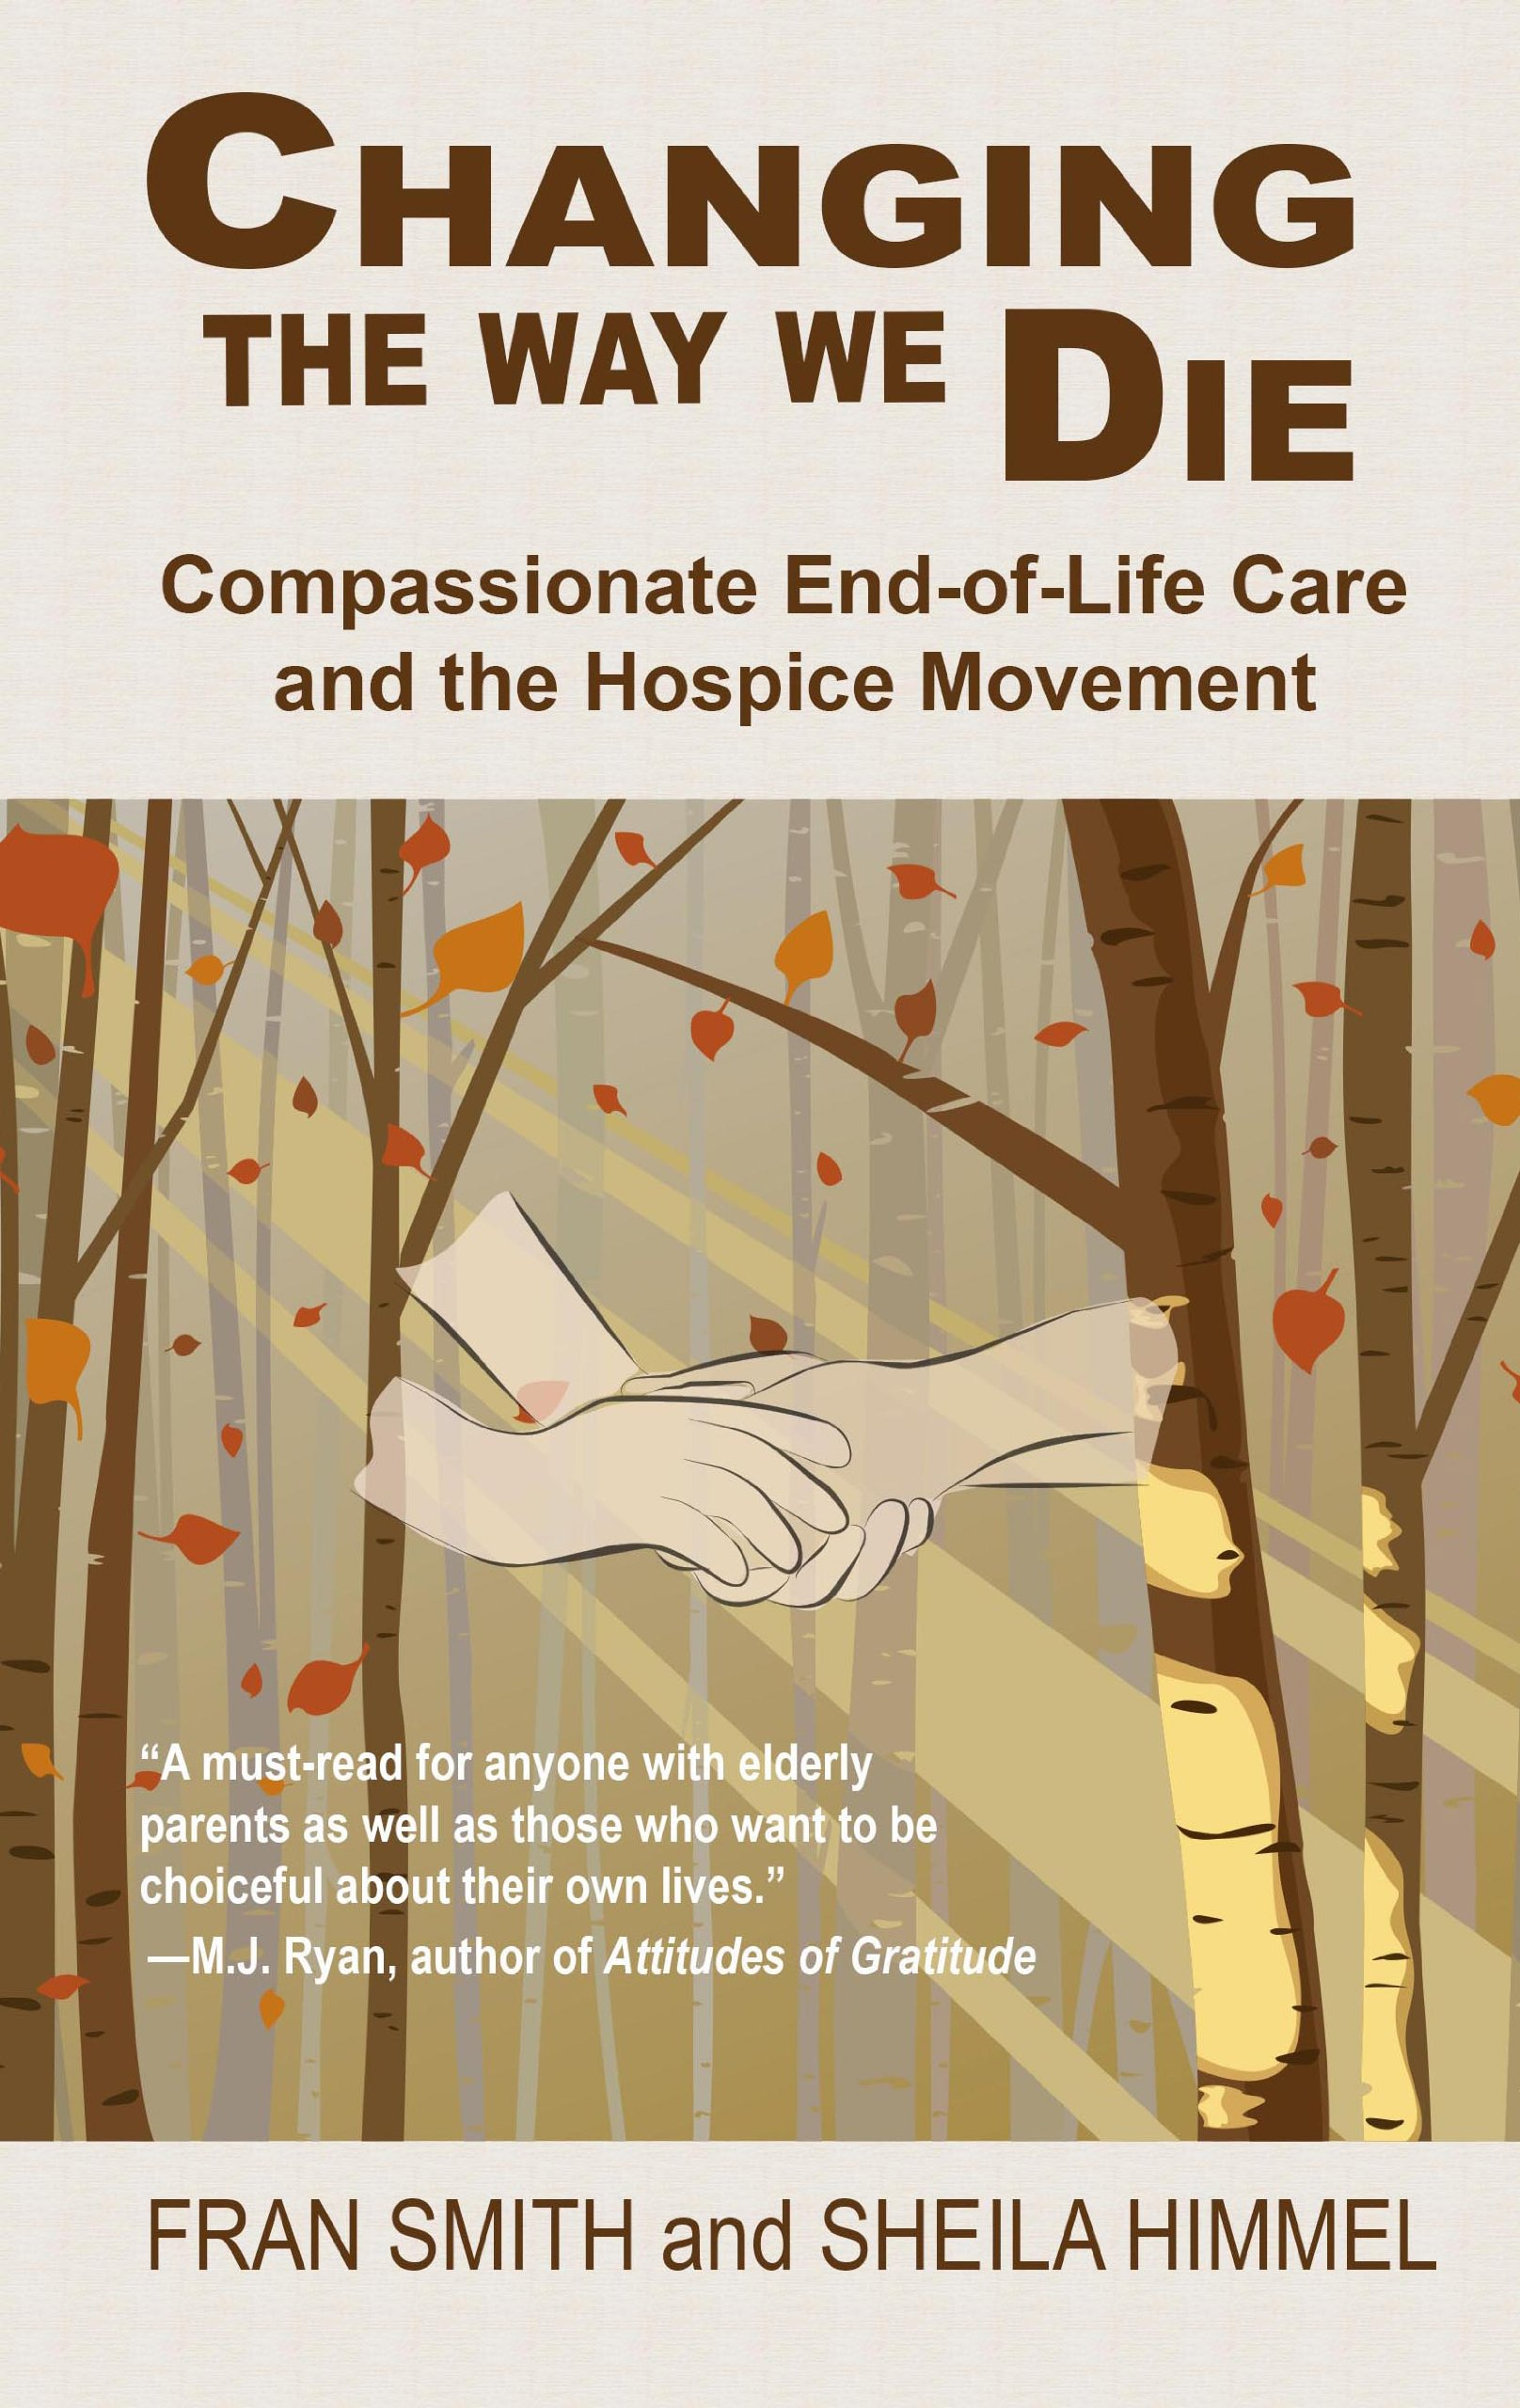 Changing the Way We Die: Compassionate End-of-Life Care and the Hospice Movement (Thorndike Press Large Print Health, Home & Learning) ebook